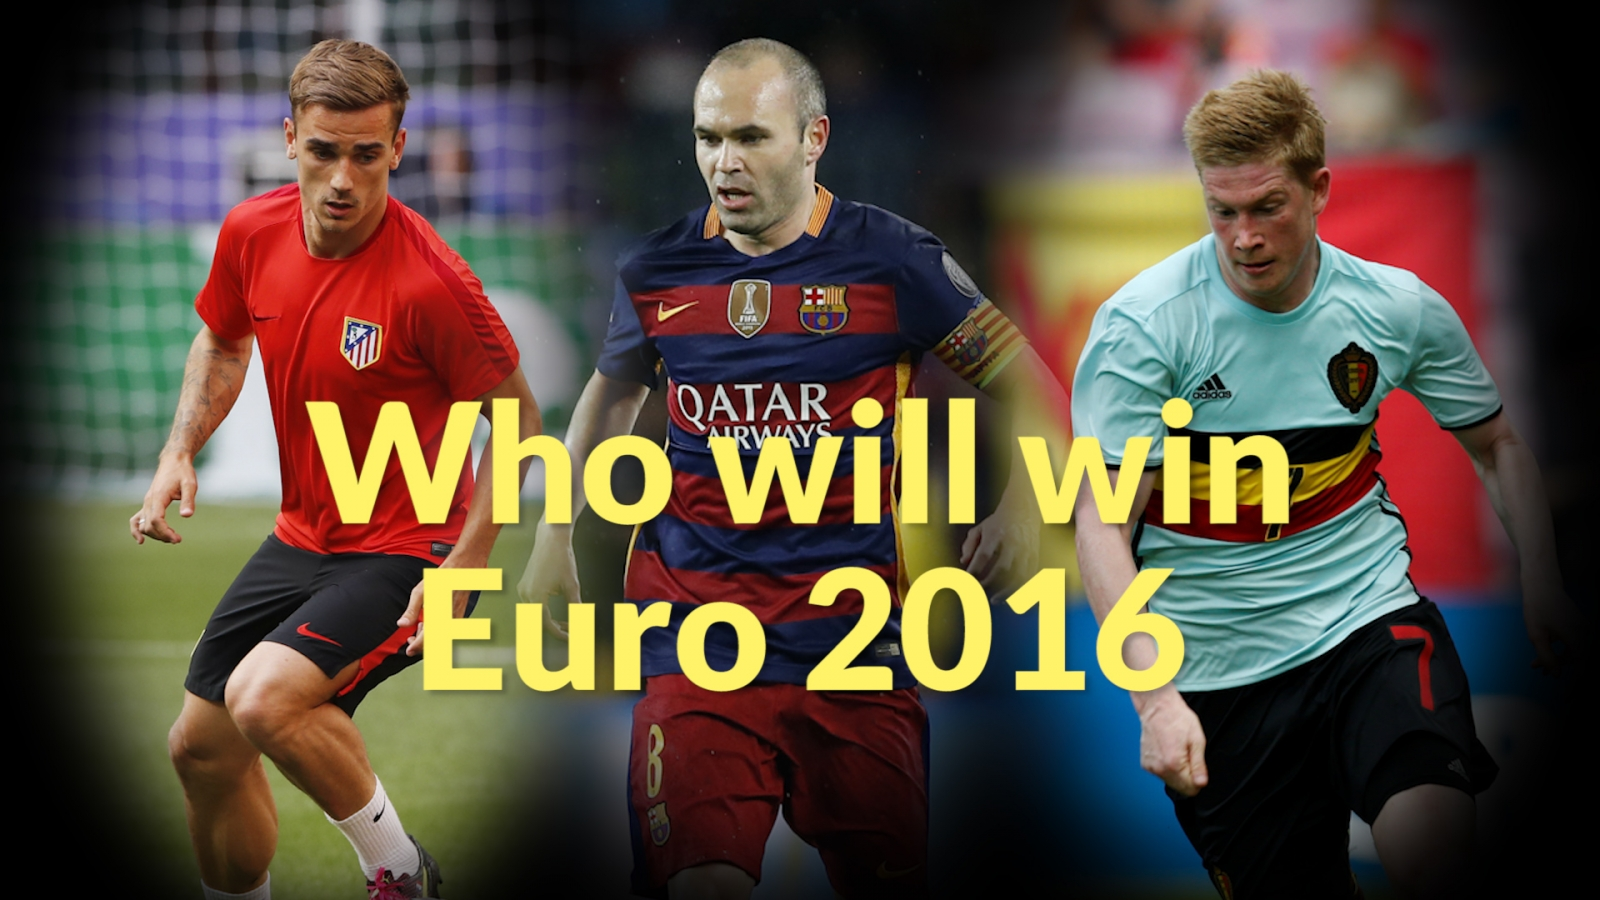 Euro 2016: Who will win Euro 2016?